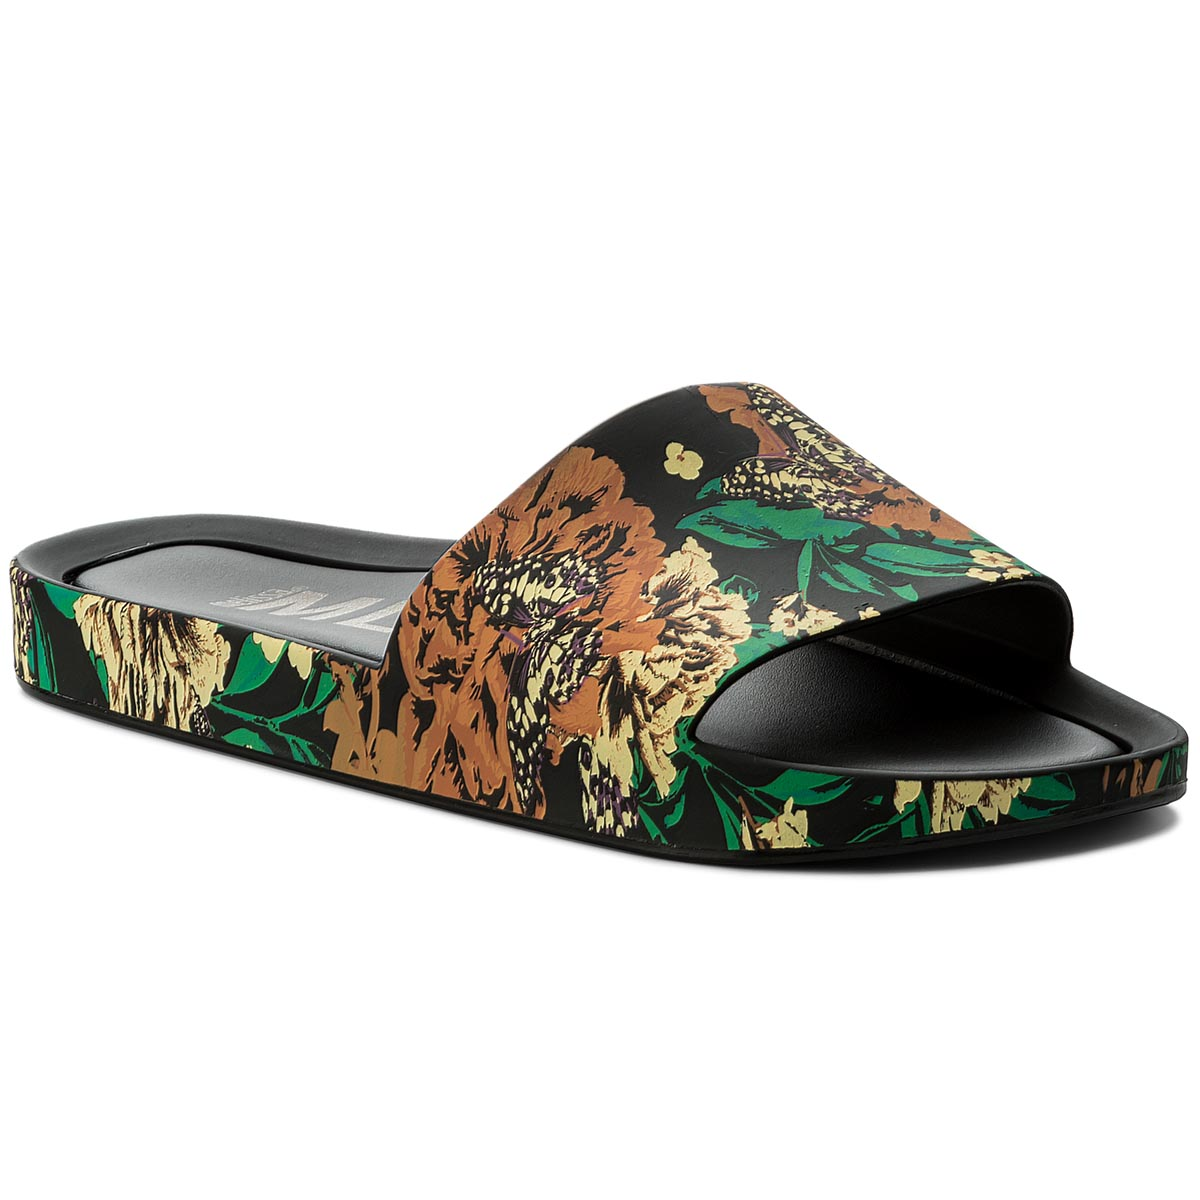 Klapki MELISSA - Beach Slide III Ad 32276 Black/Green 52235